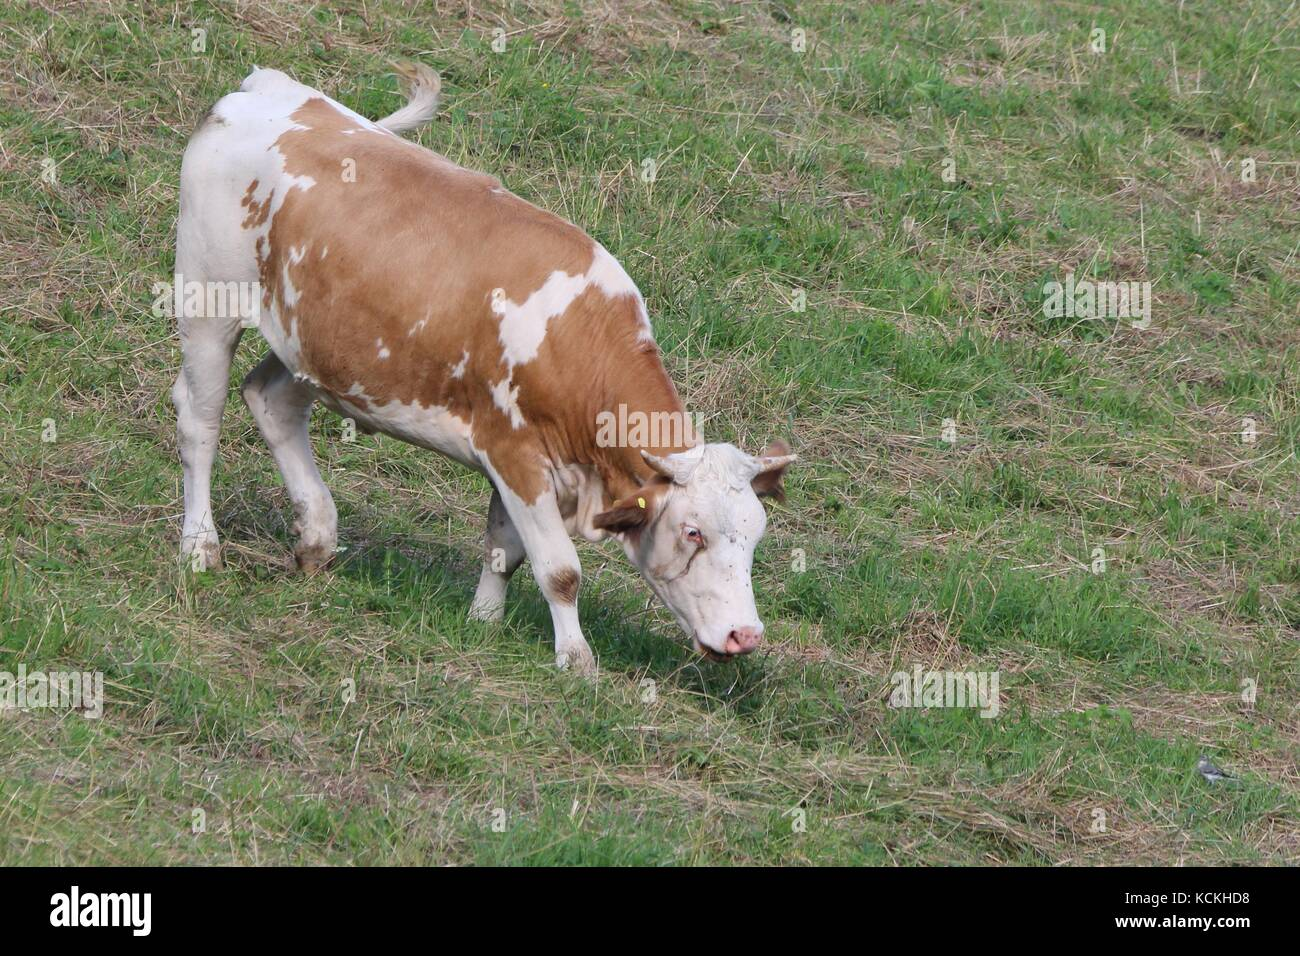 A grazing cattle on the meadow Stock Photo